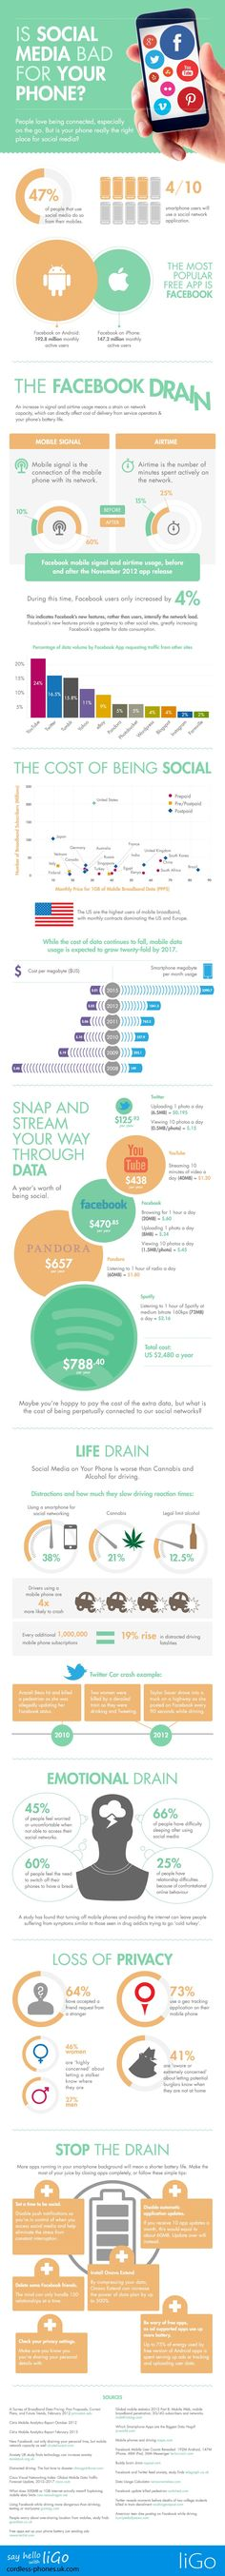 The True Cost Of Using Social Media On Your Phone [Infographic]